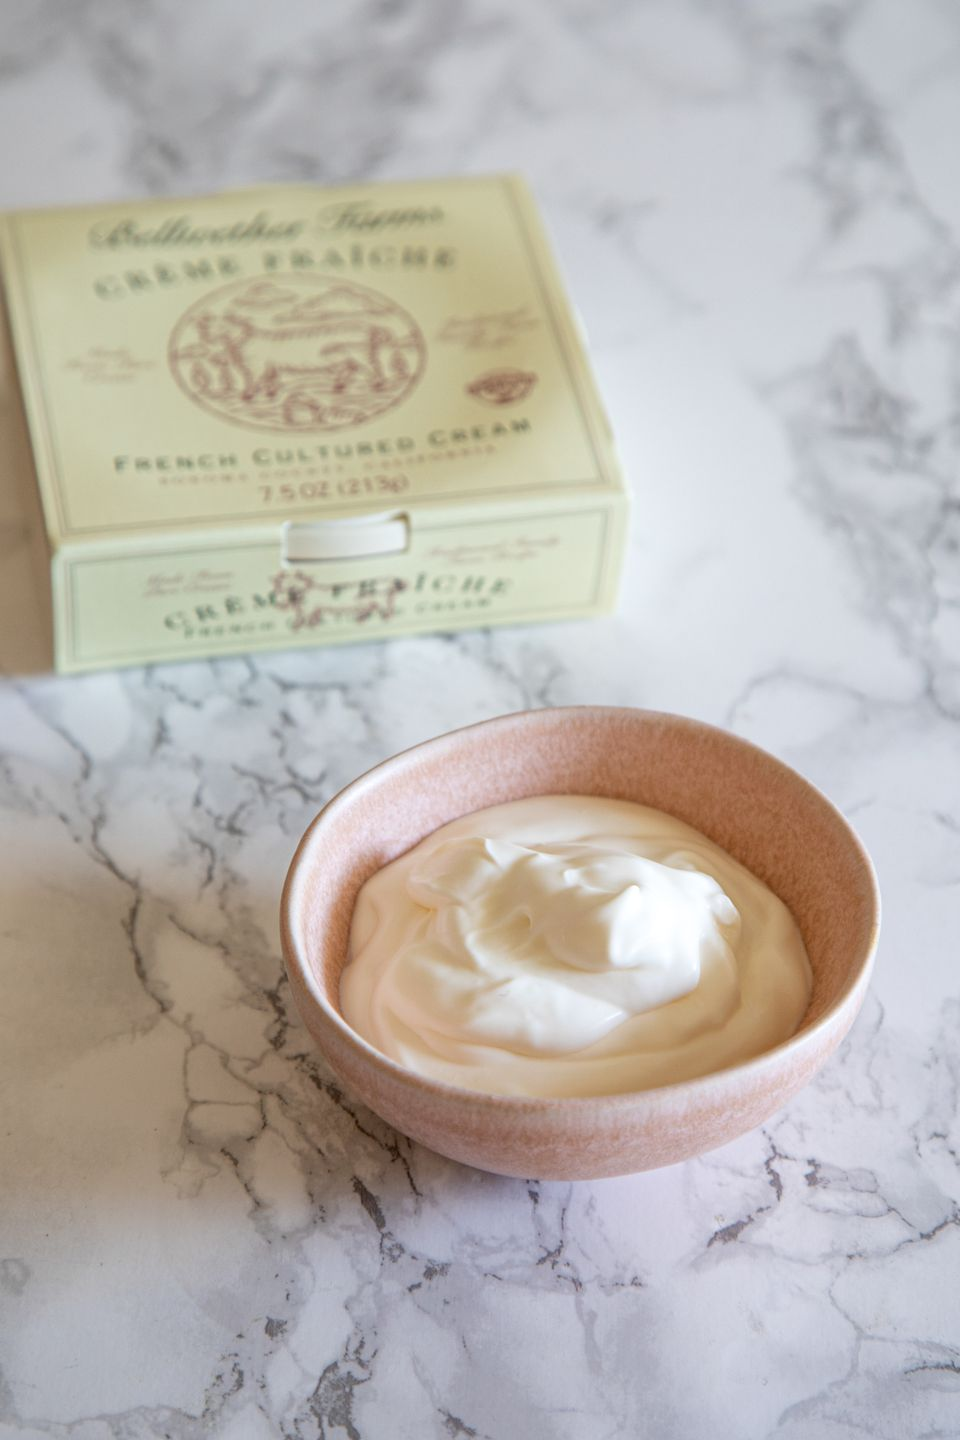 A bowl of Crème Fraîche and its packaging behind it.